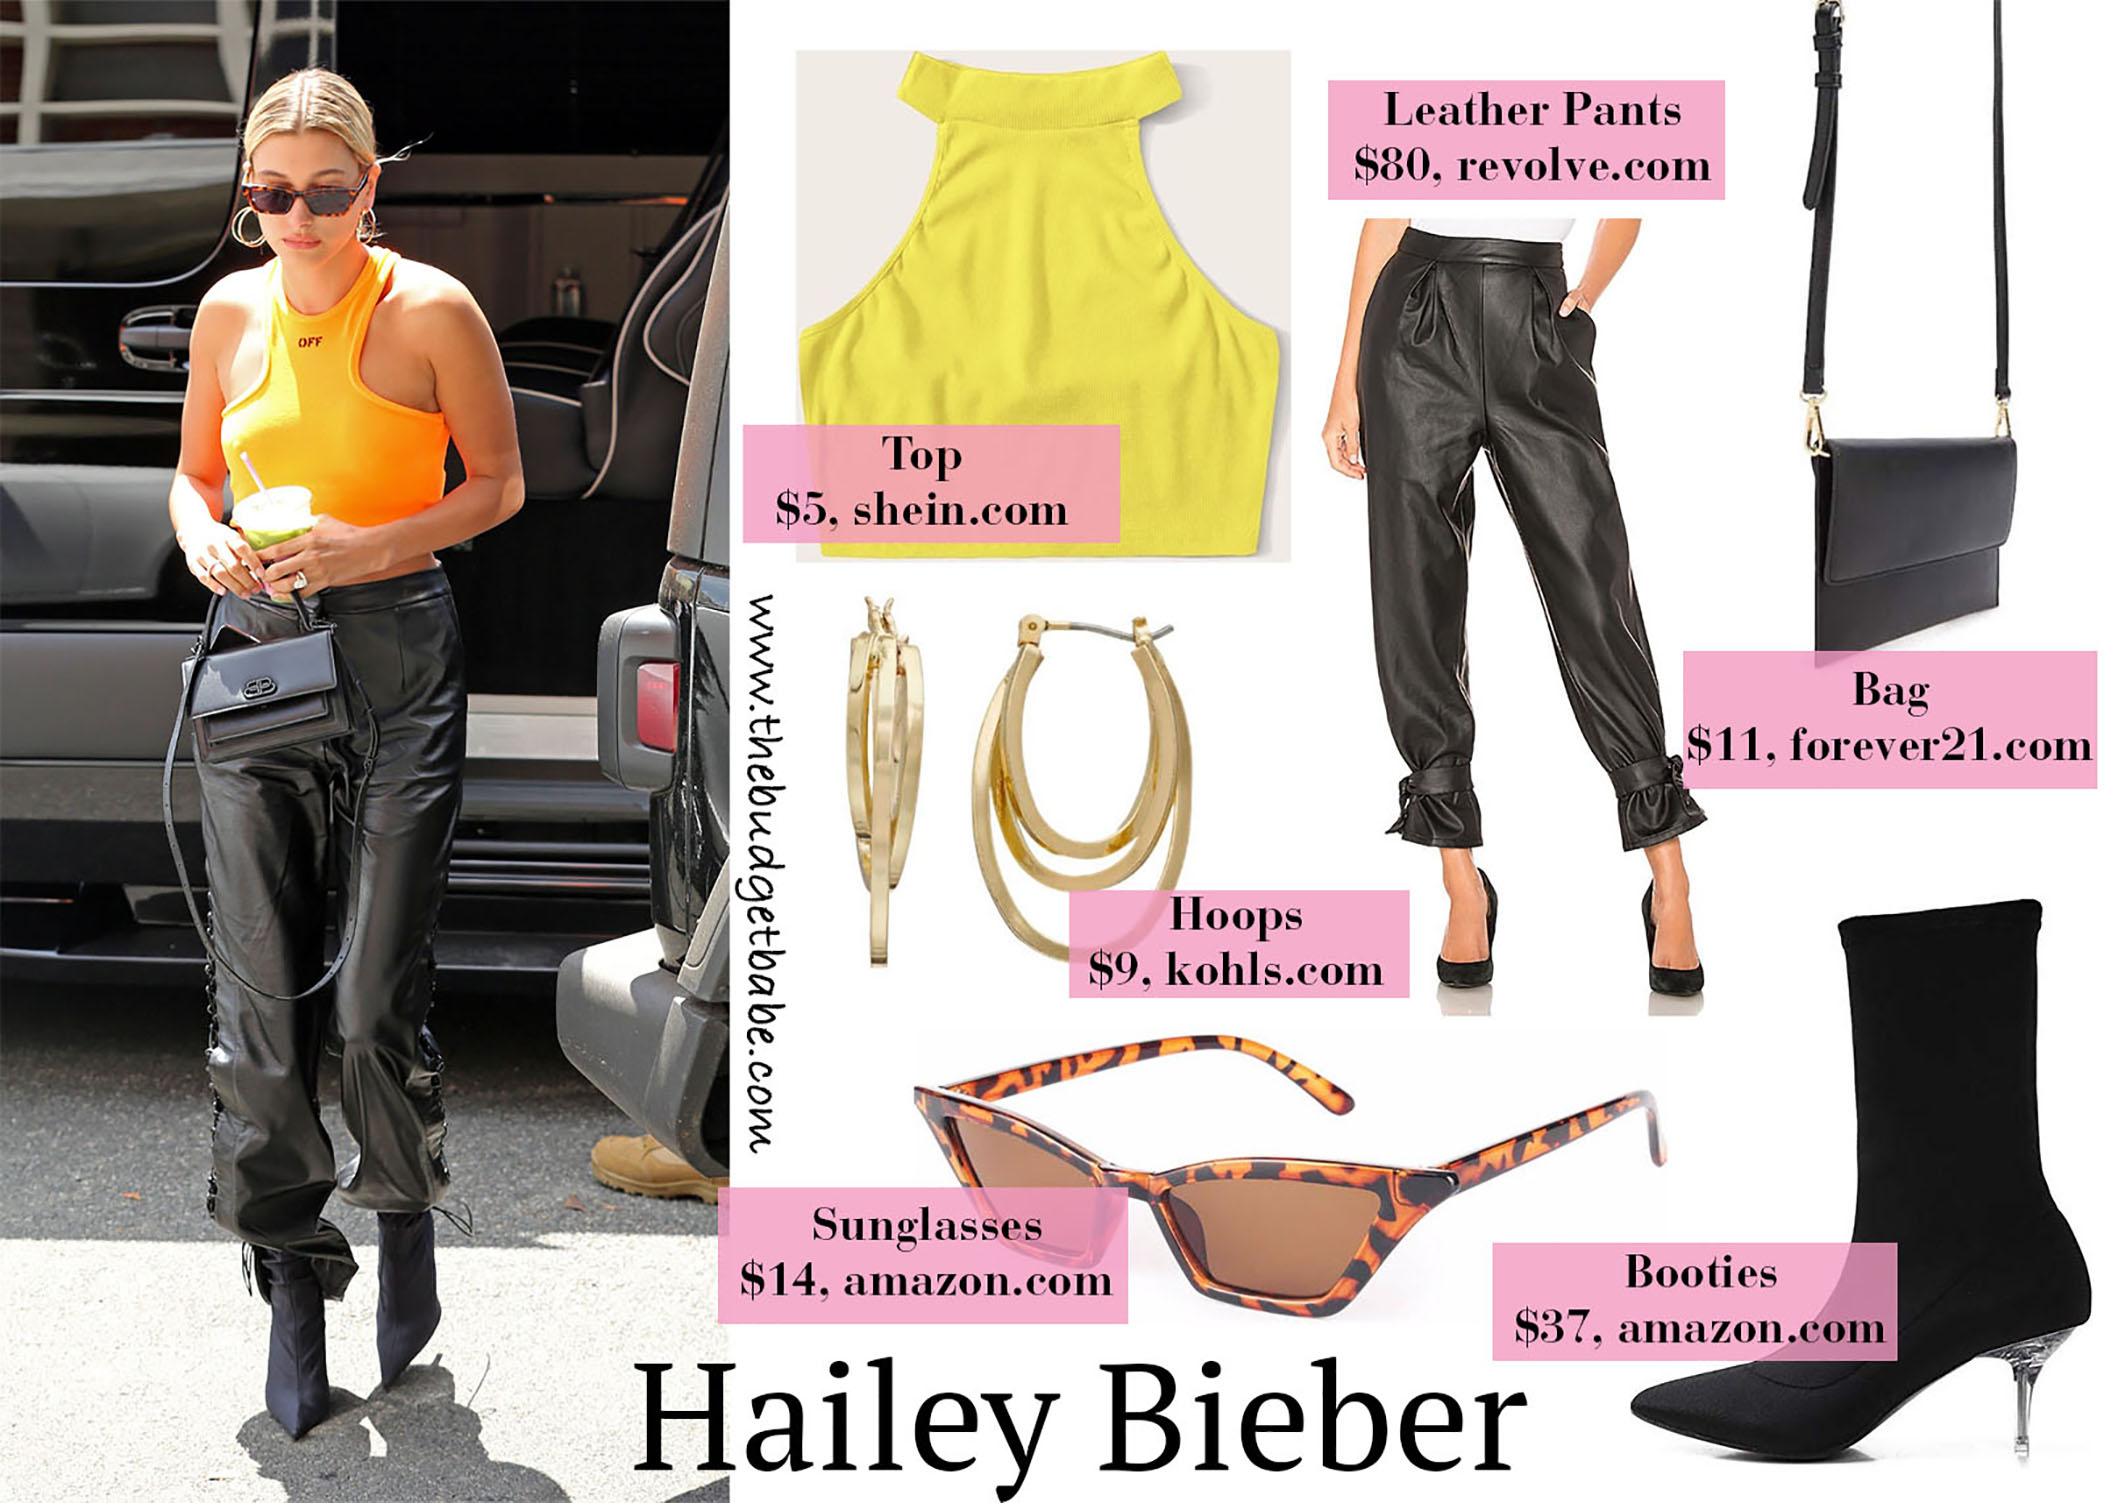 Hailey Bieber Yellow Tank Leather Pants